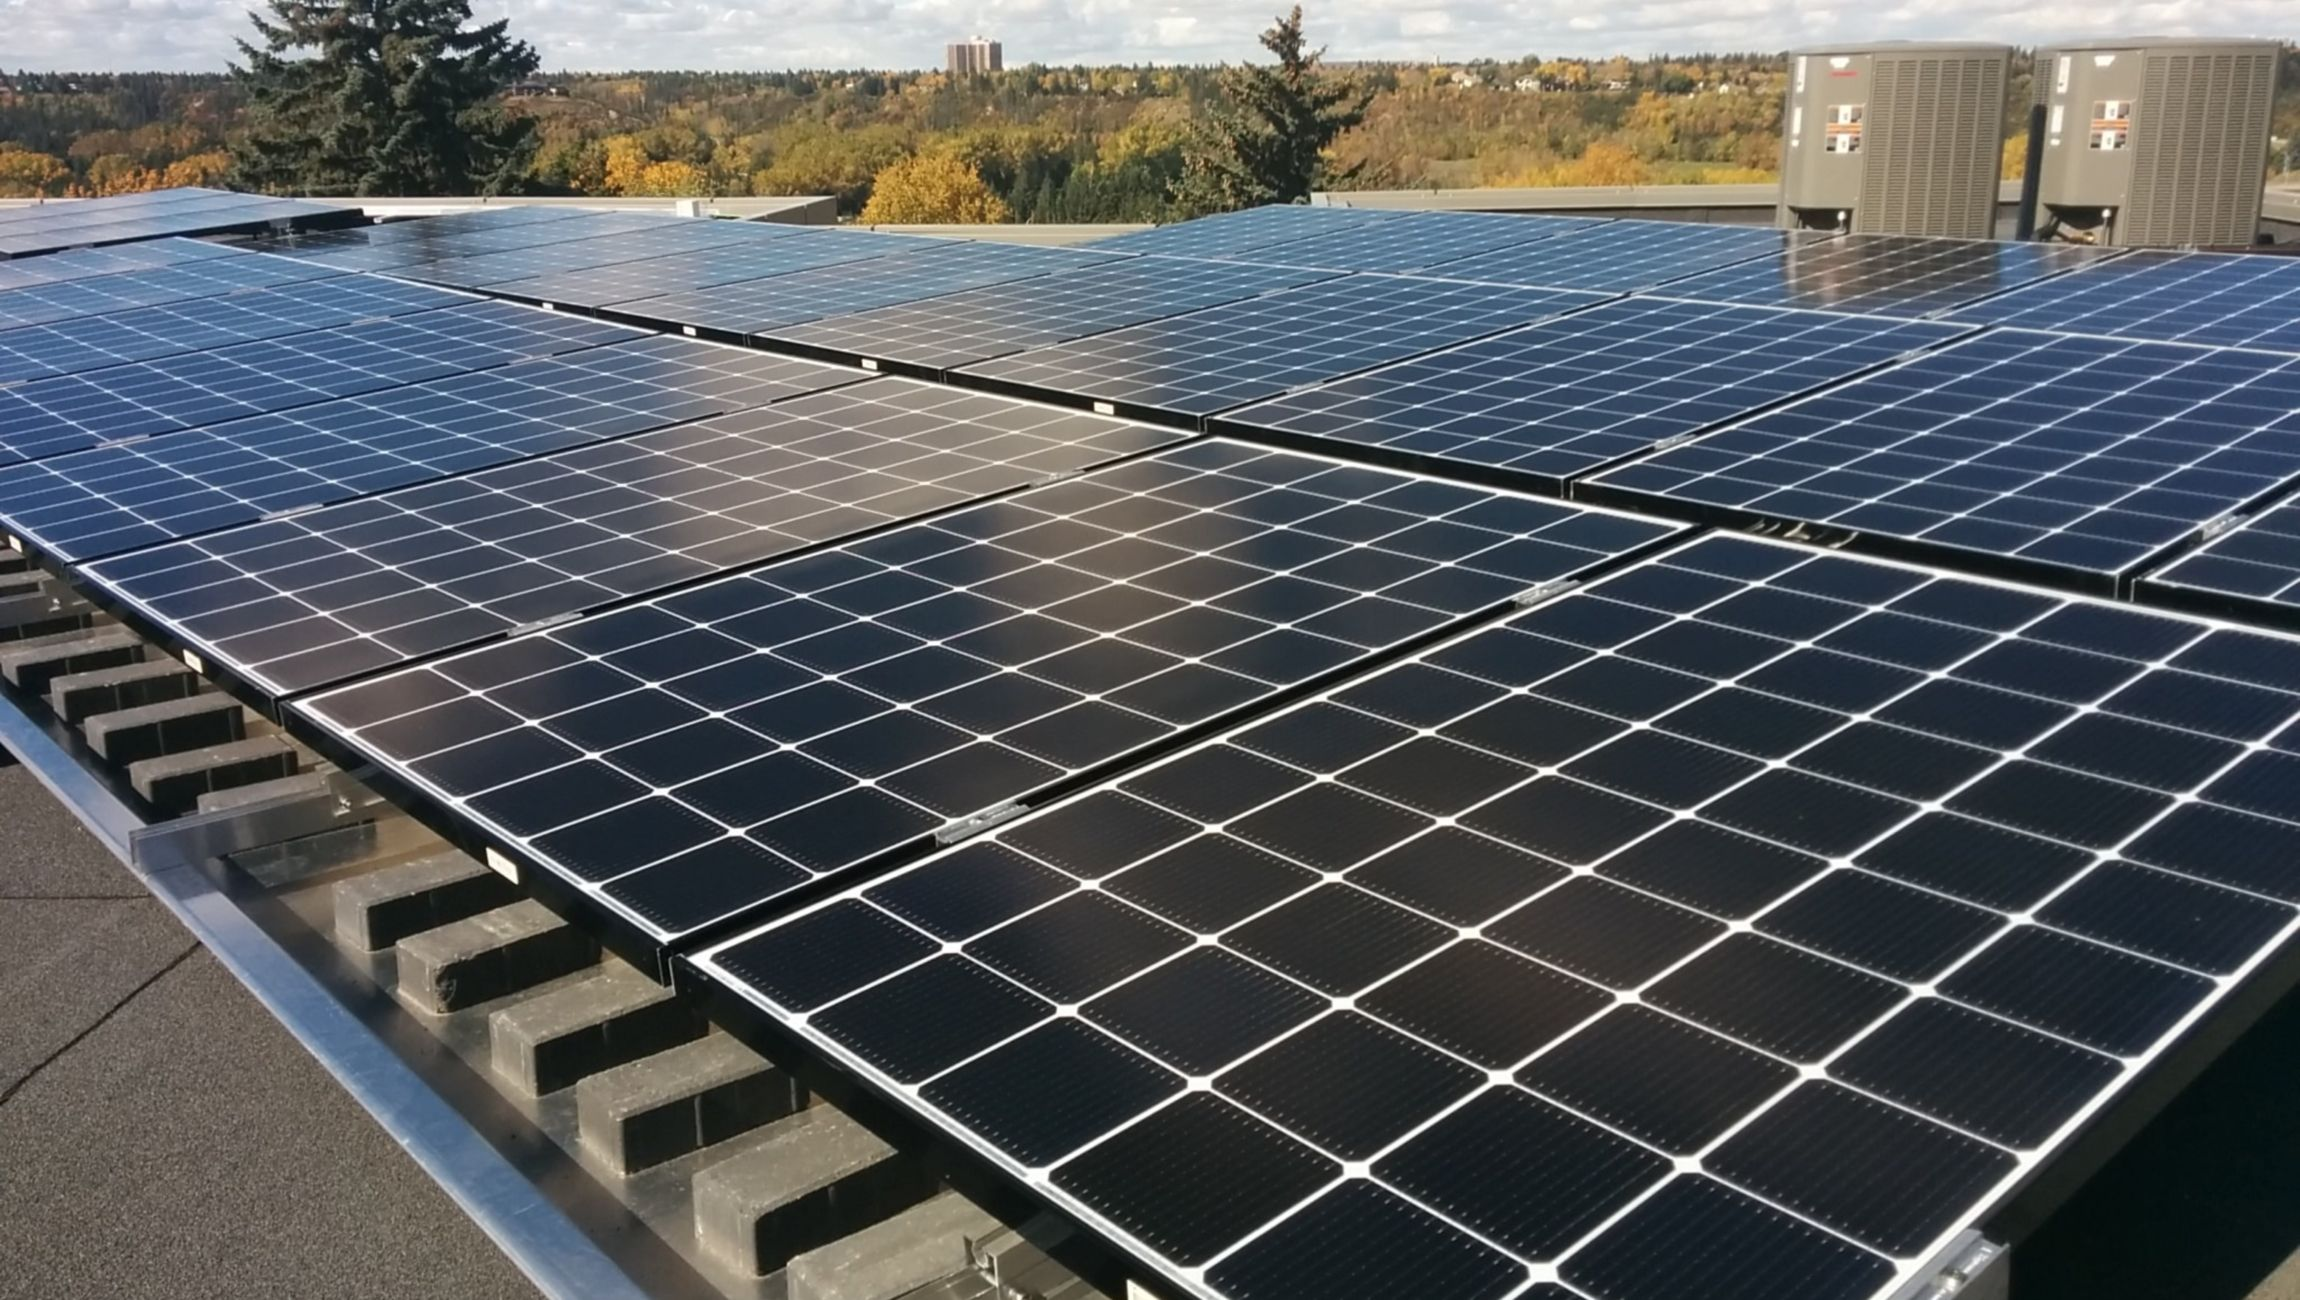 Ballasted flat roof solar system